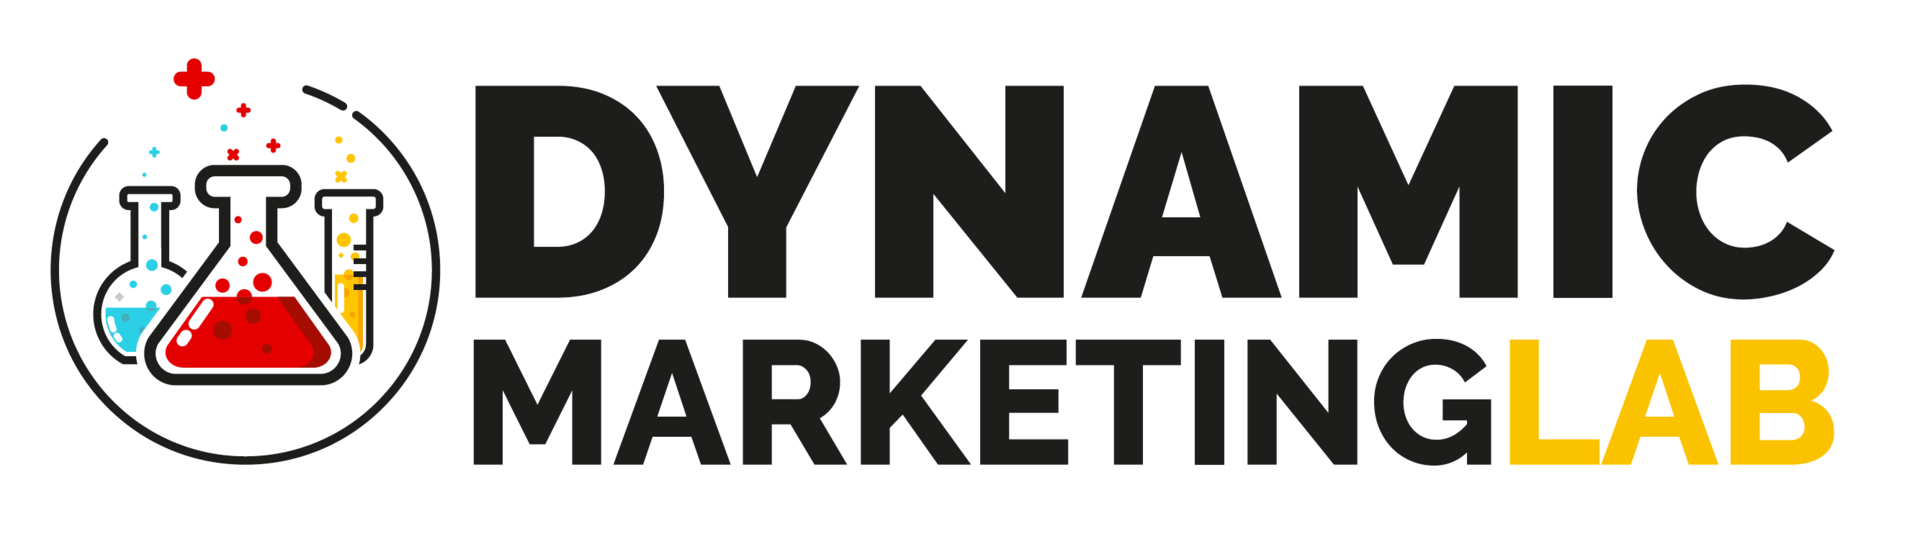 Dynamic Marketing Lab